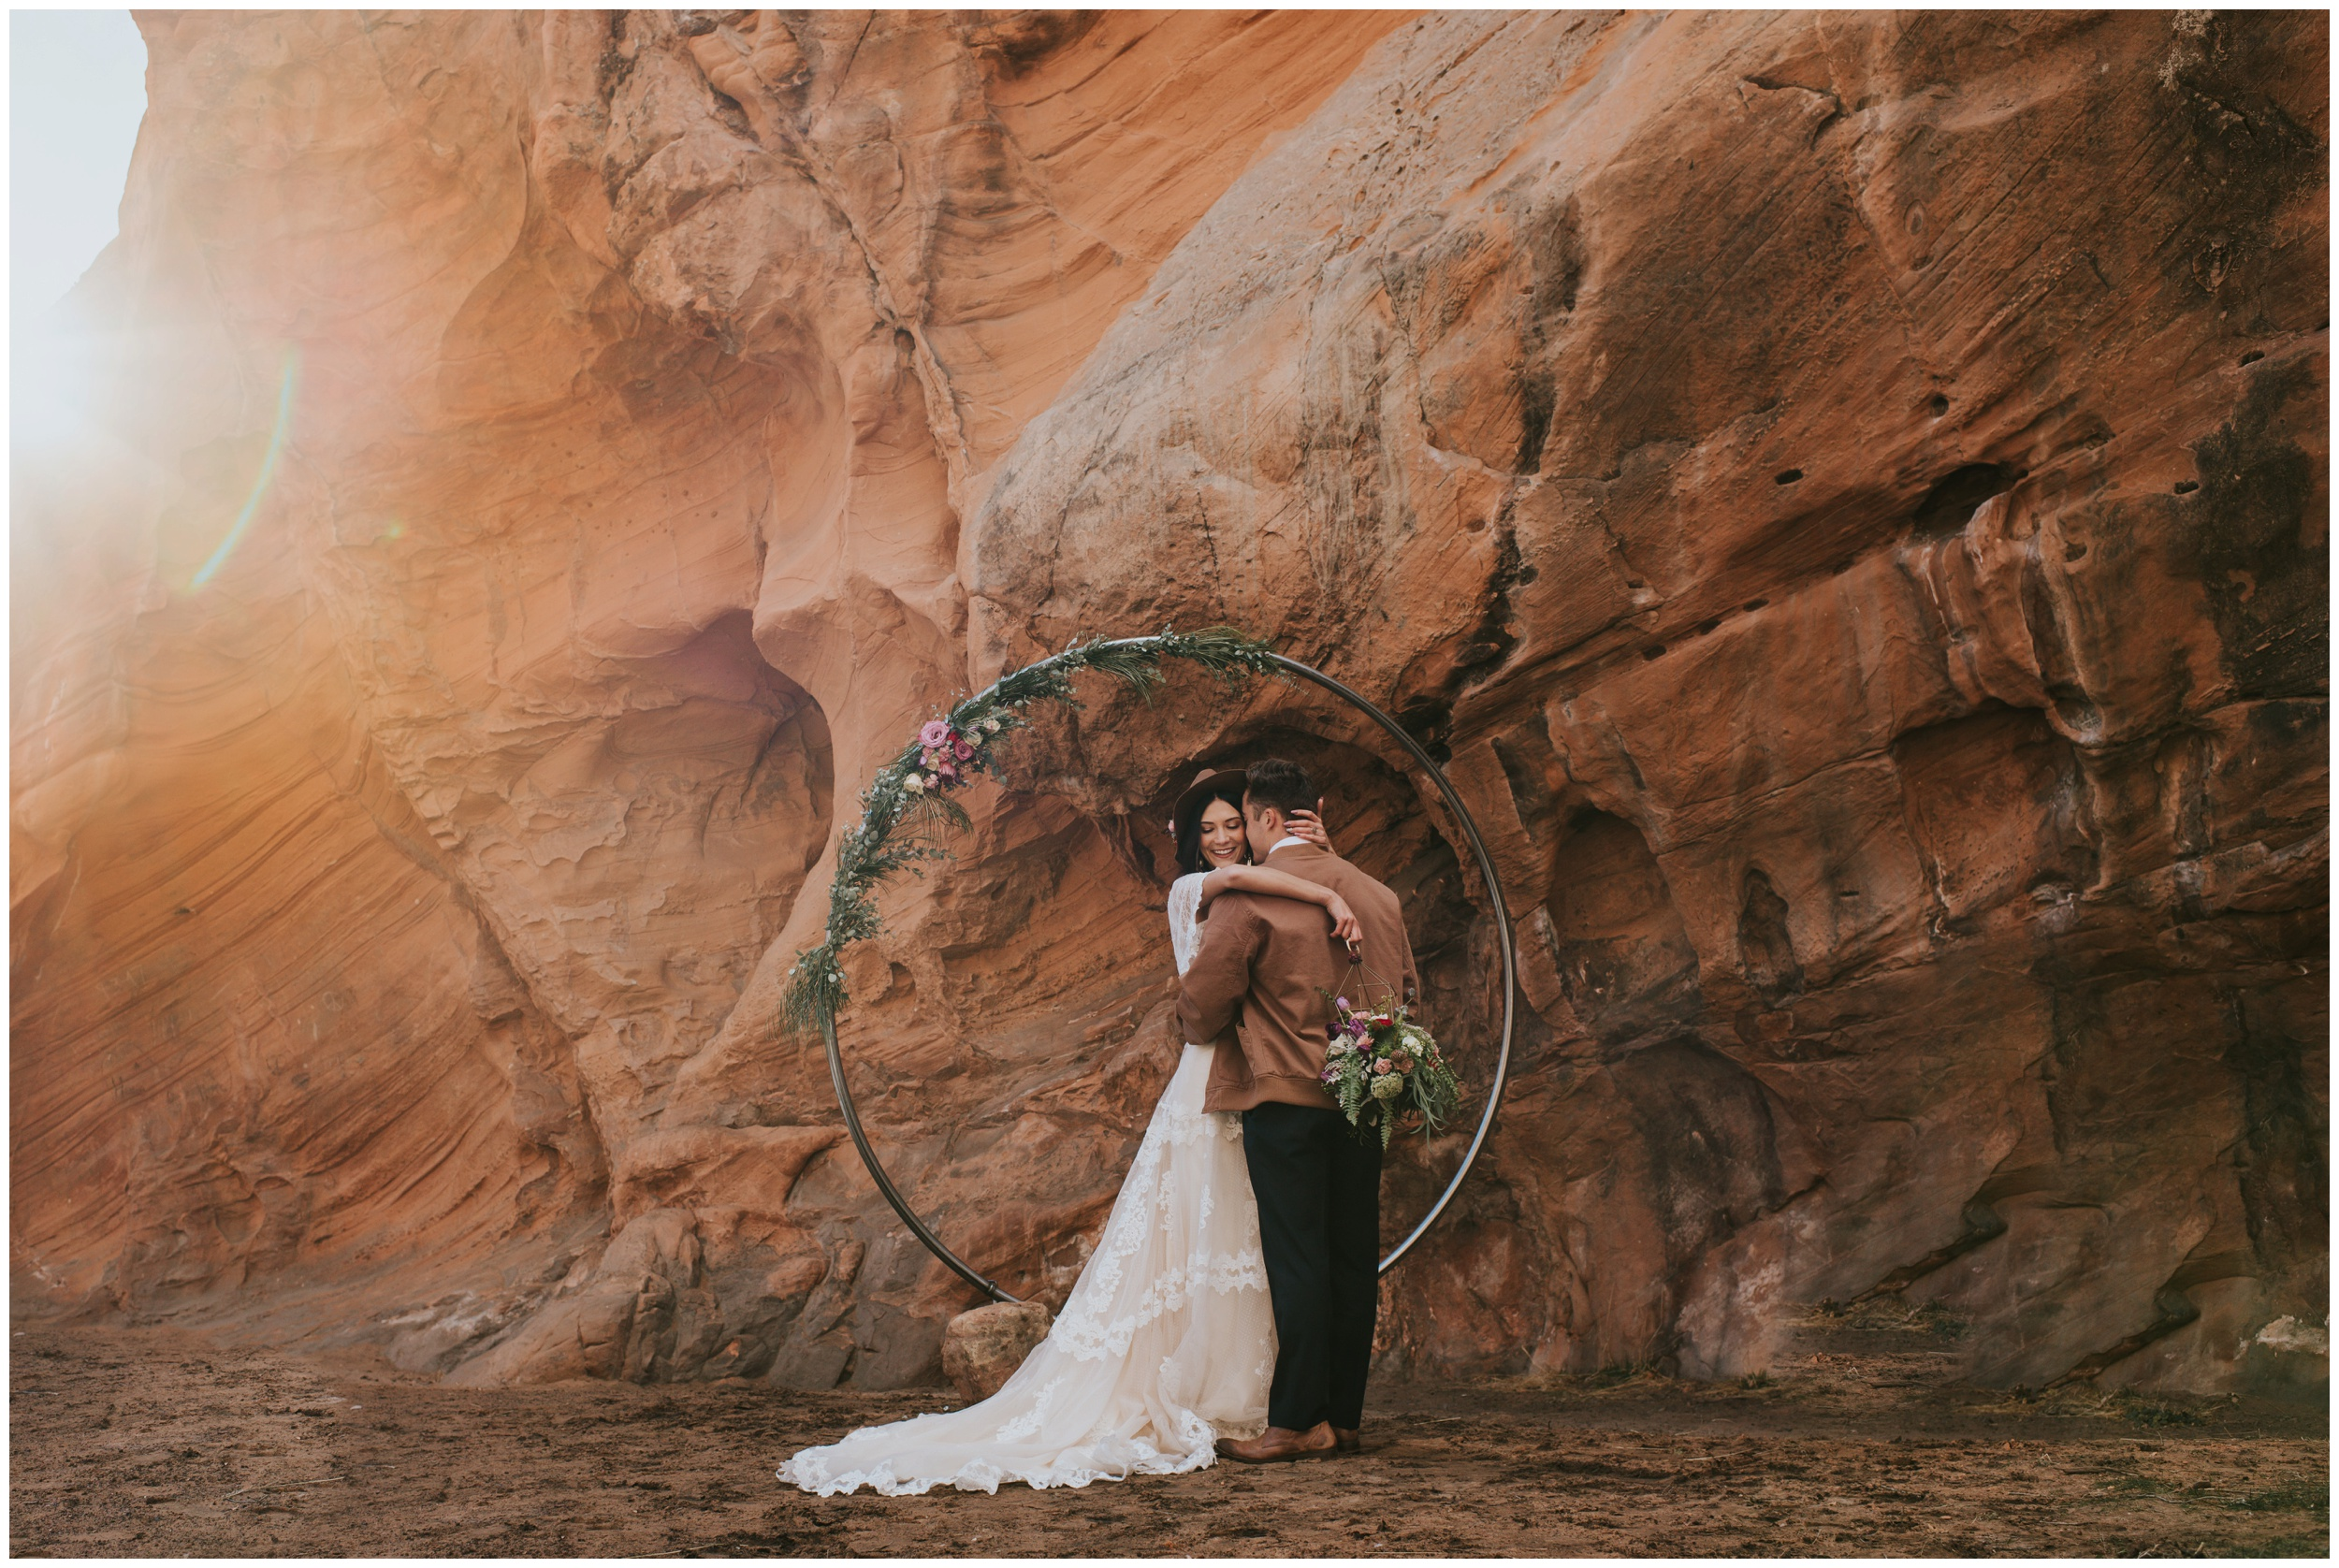 redrockutah-idahophotographer-utahphotographer-wedding-15.jpg